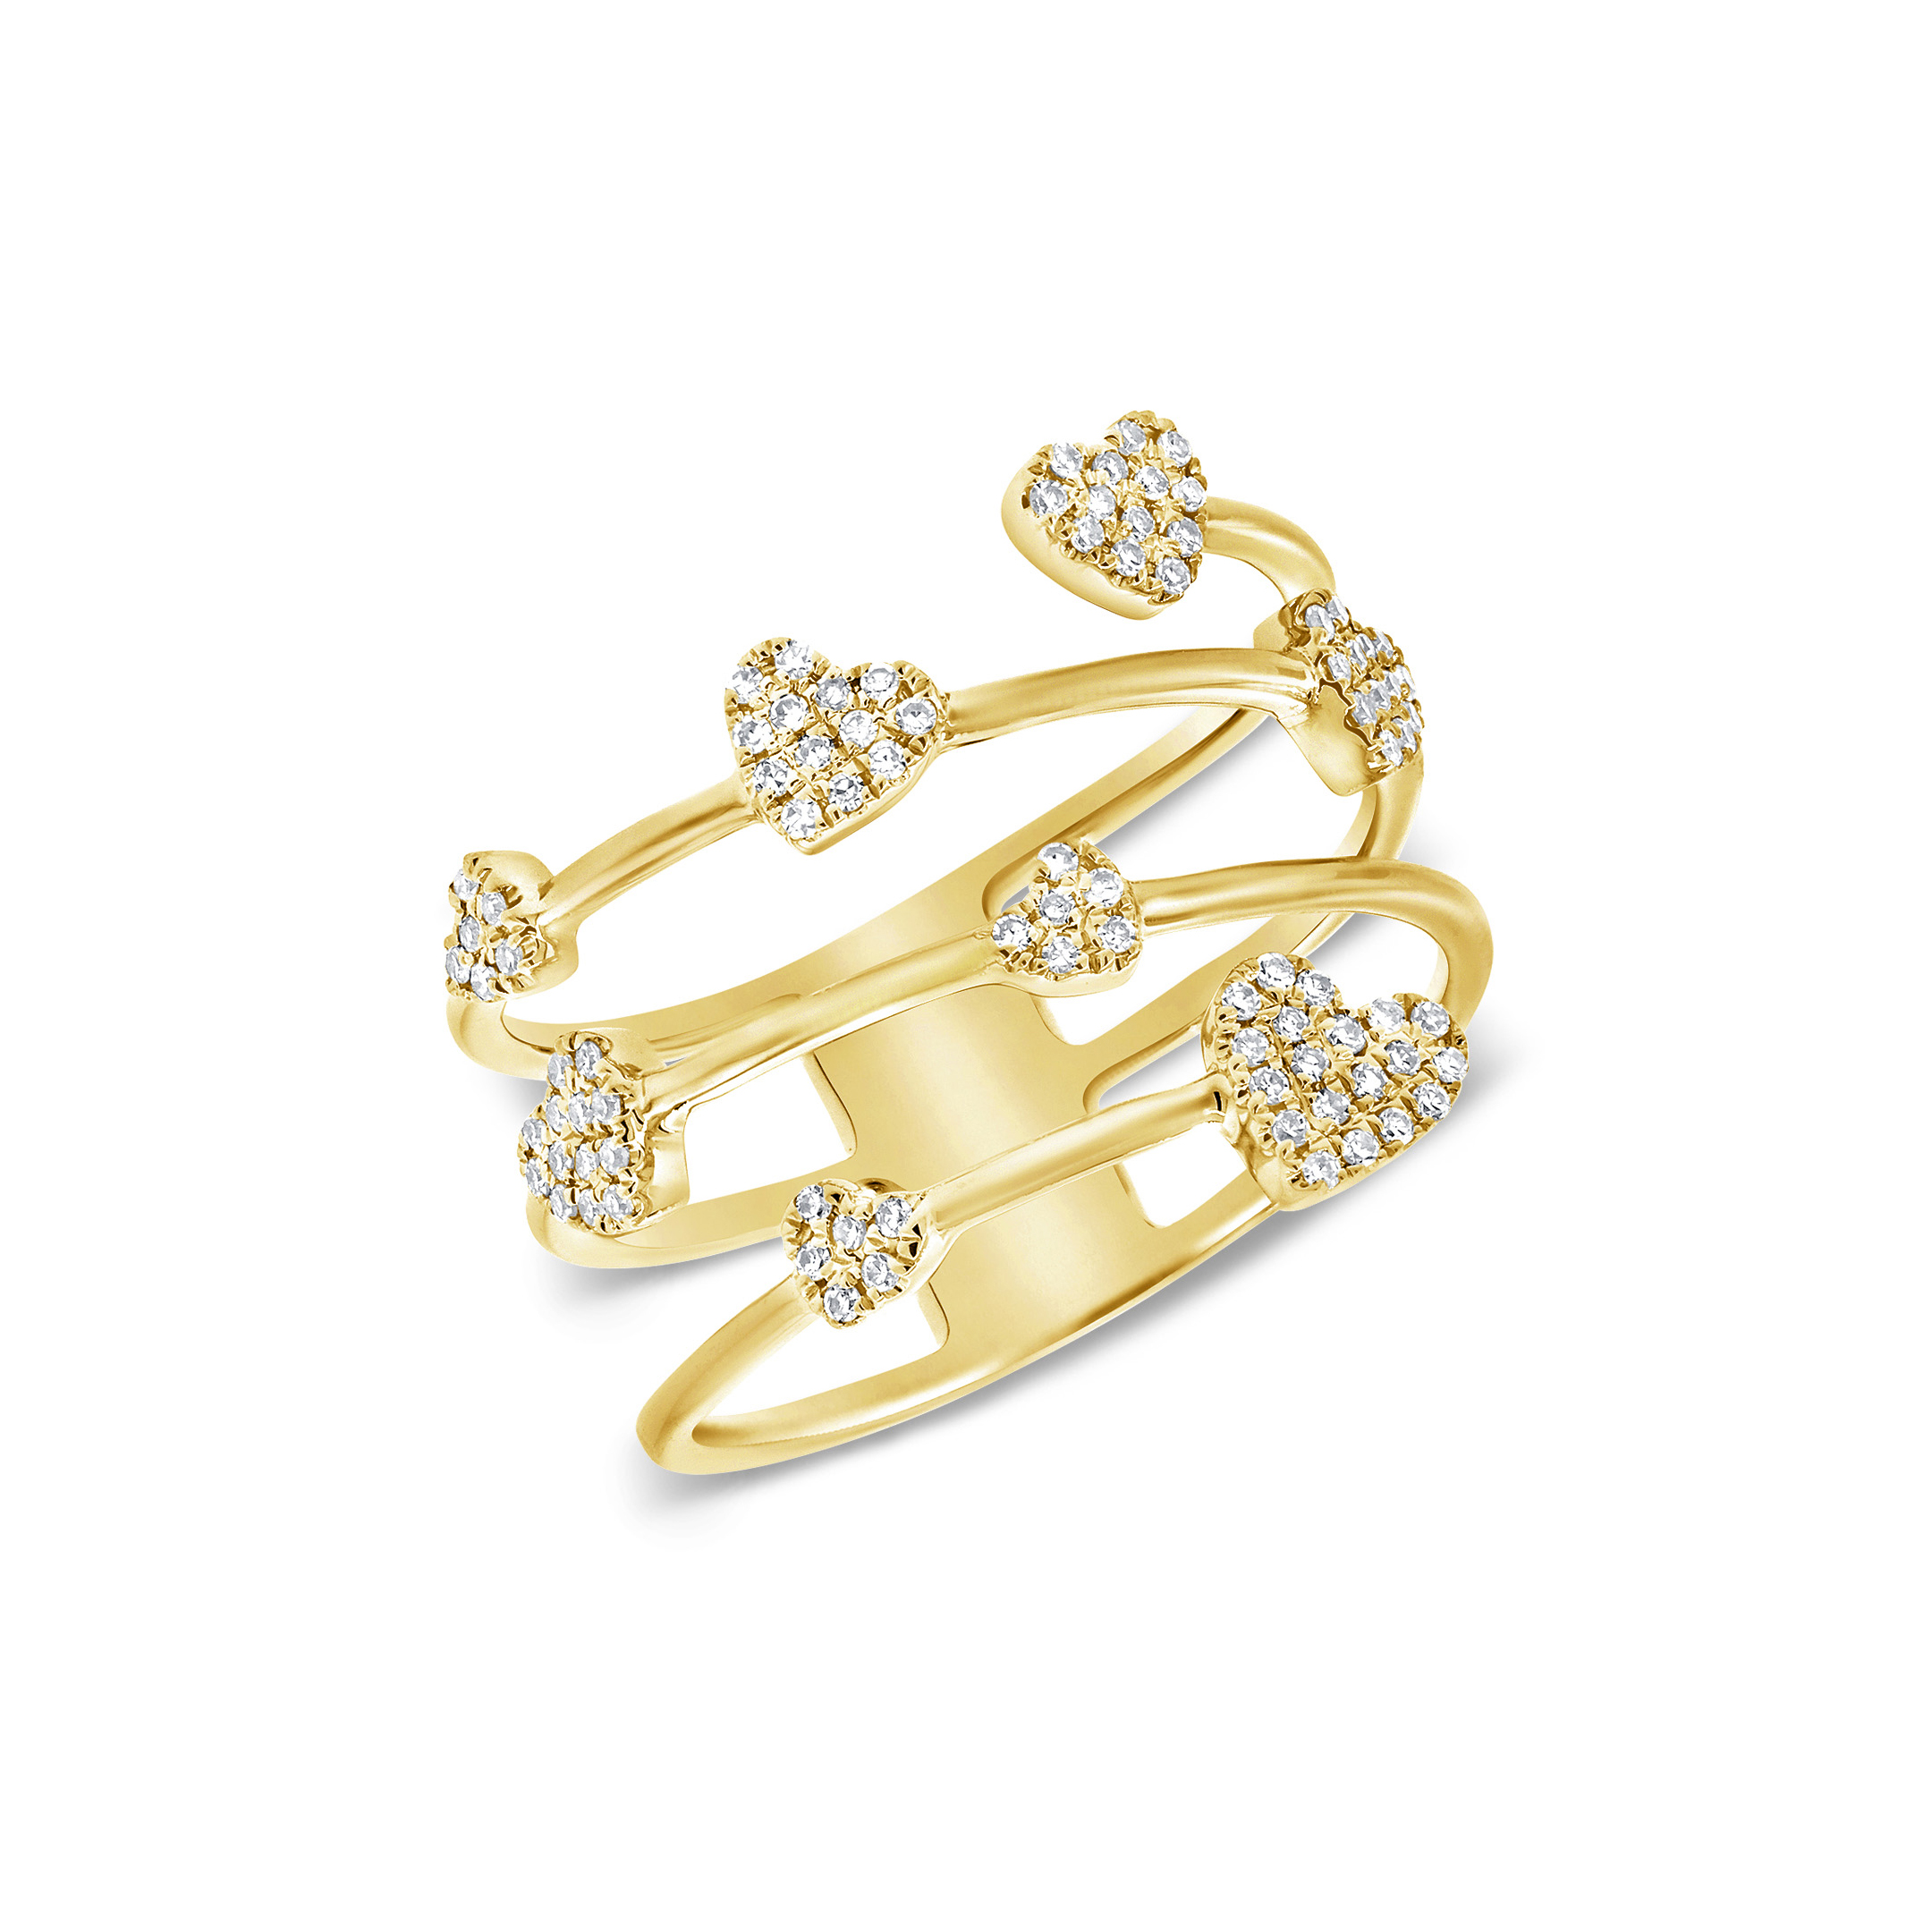 floating hearts ring - diamonds & yellow gold